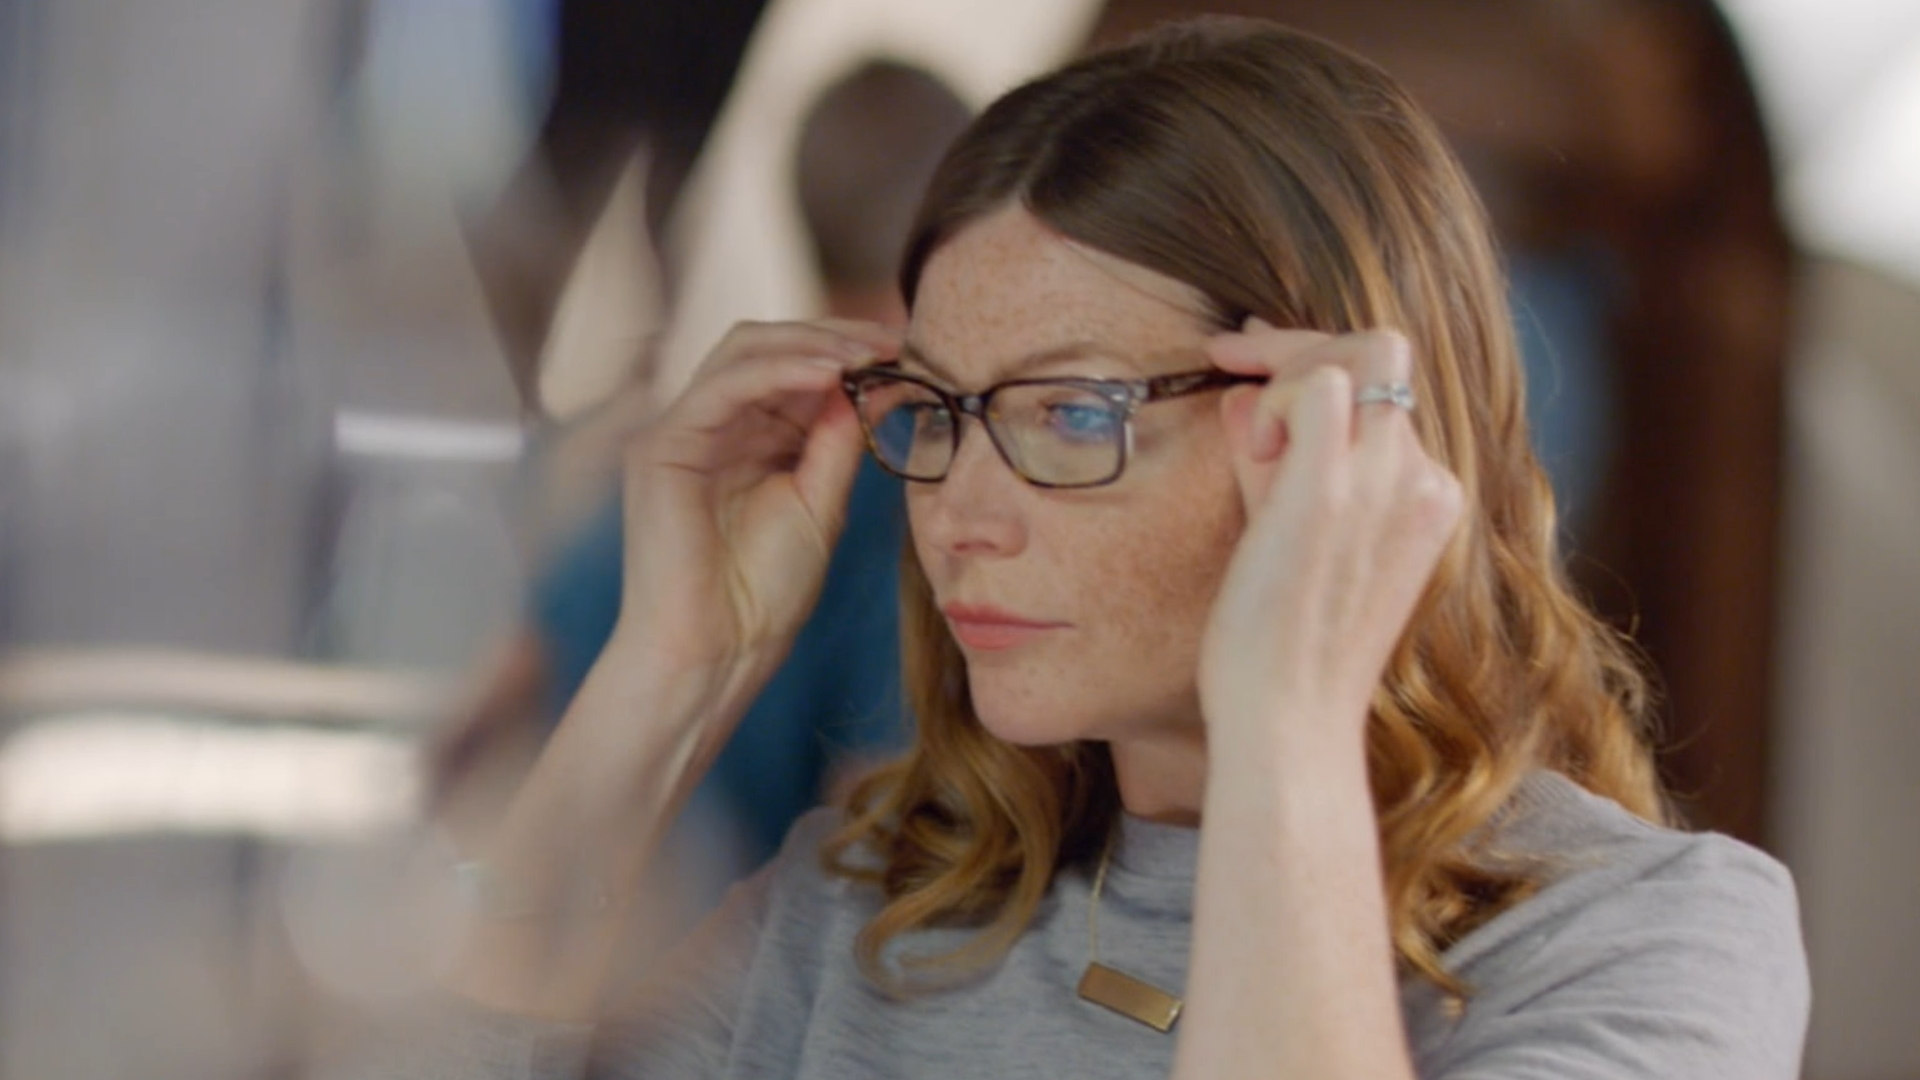 Boots Opticians 'Make Up Artist' - Directed by Jake Dypka @ Independent for Mother London